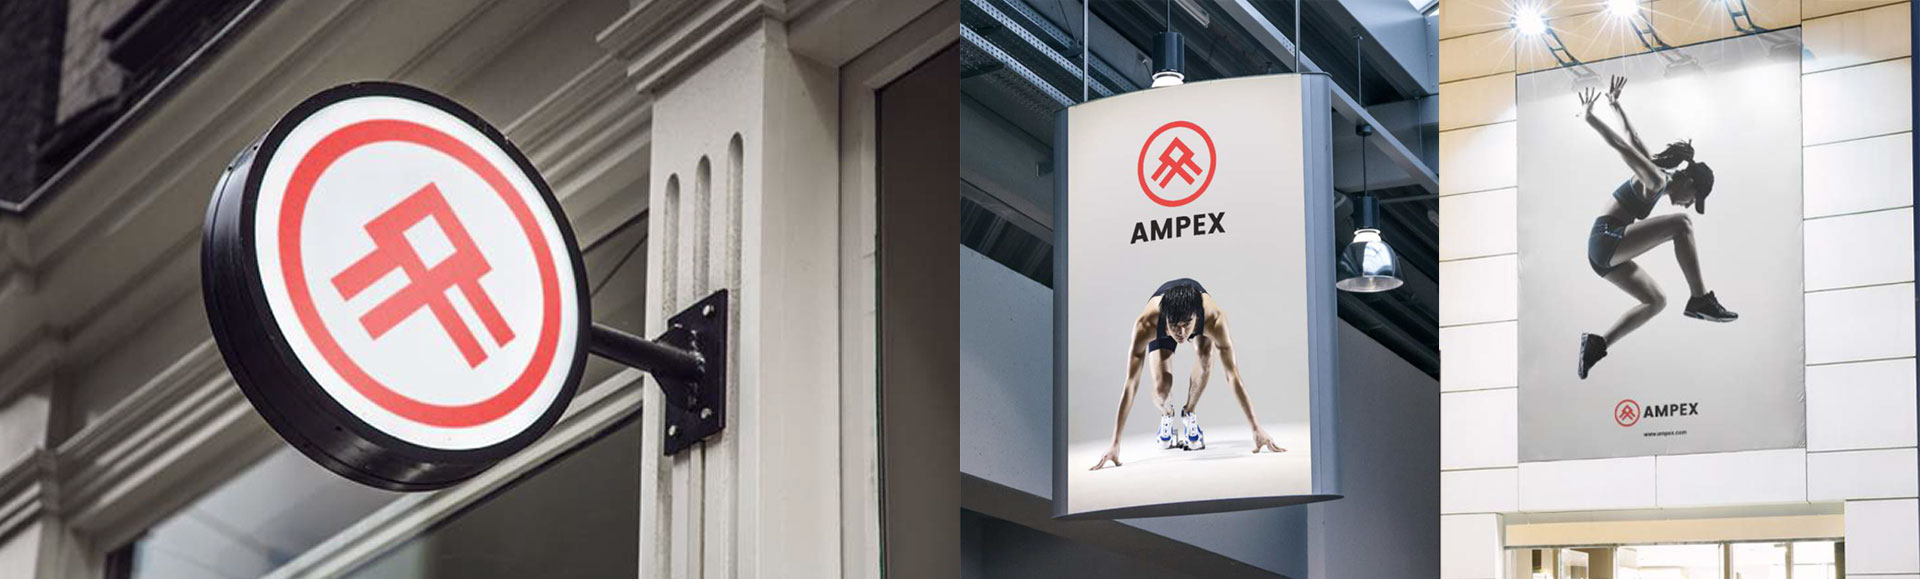 ampex New Website